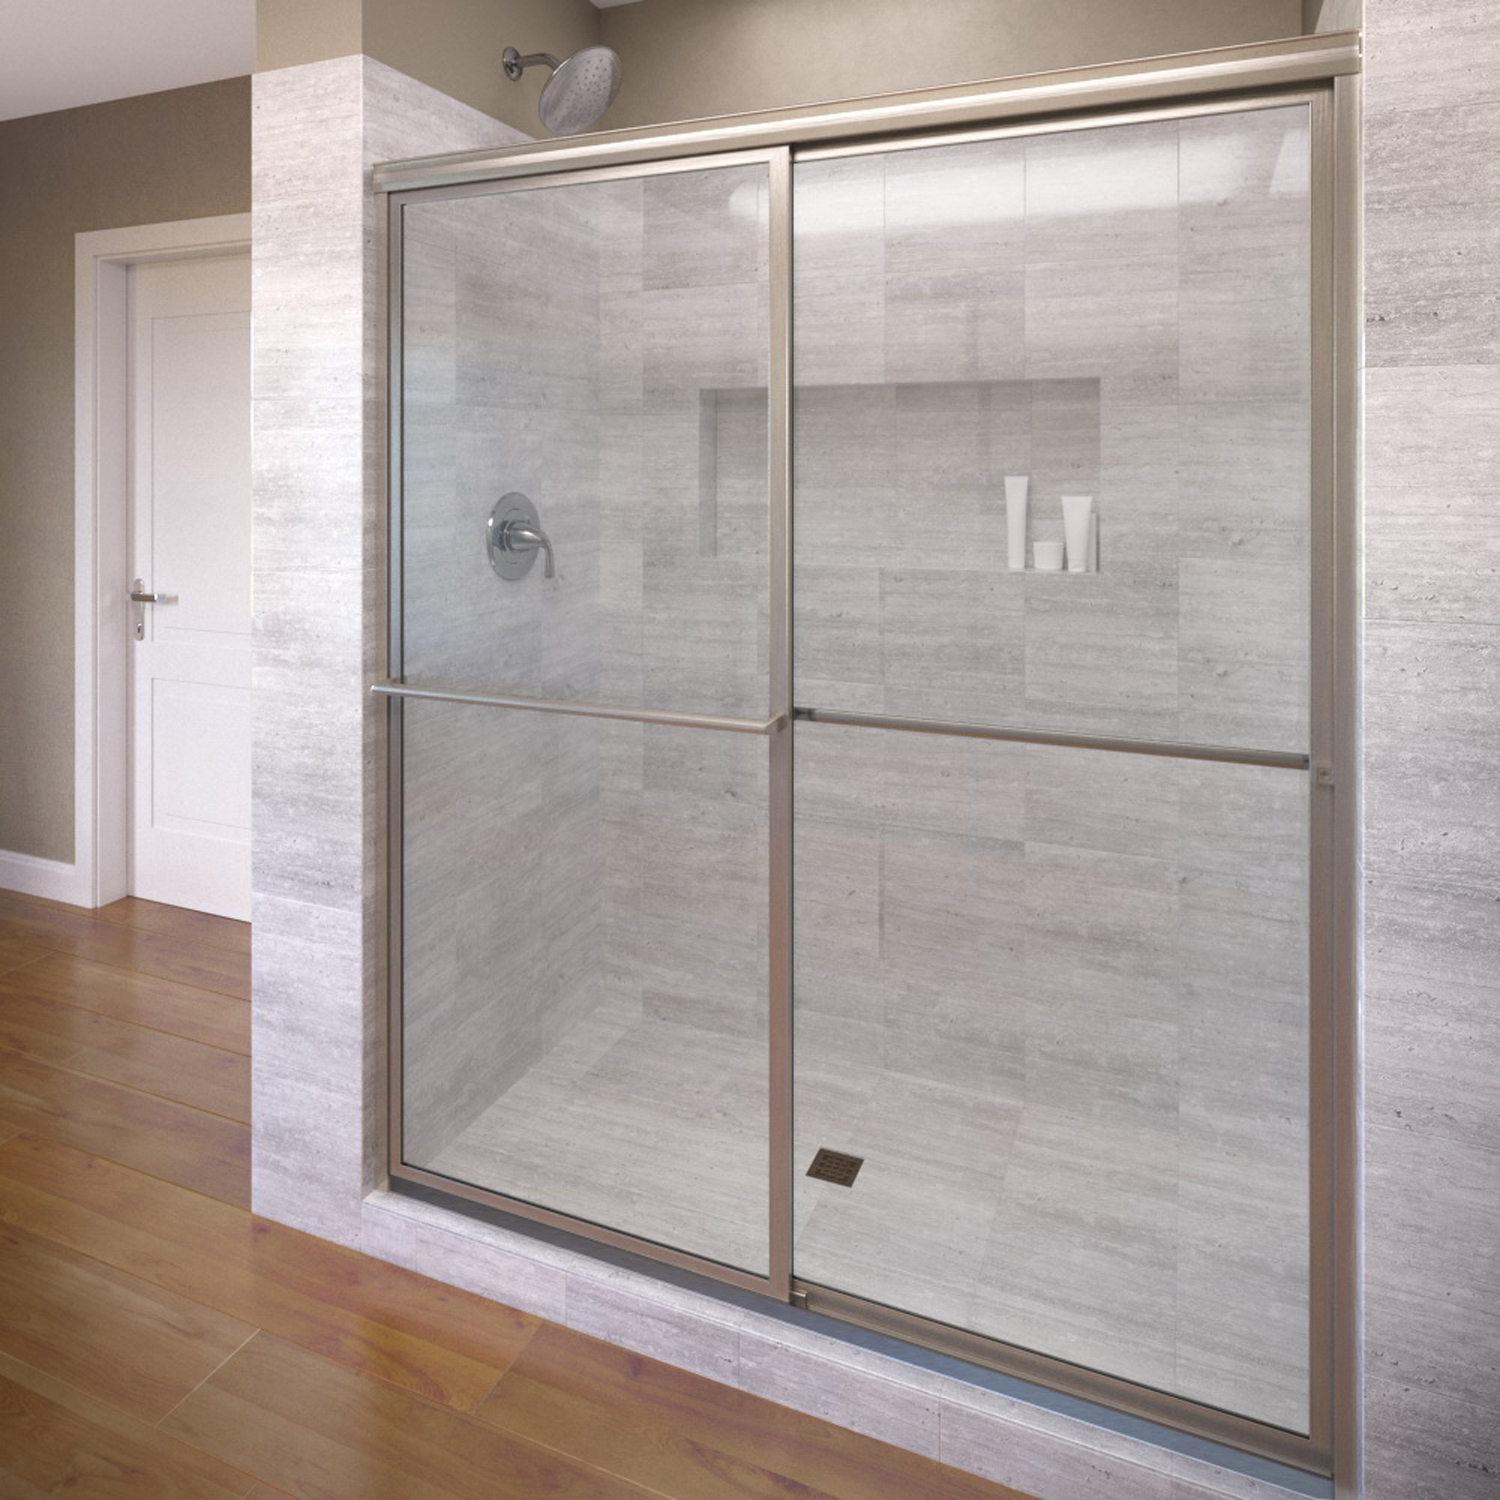 Basco 7150 48clbn 48 Deluxe Sliding Shower Enclosure With